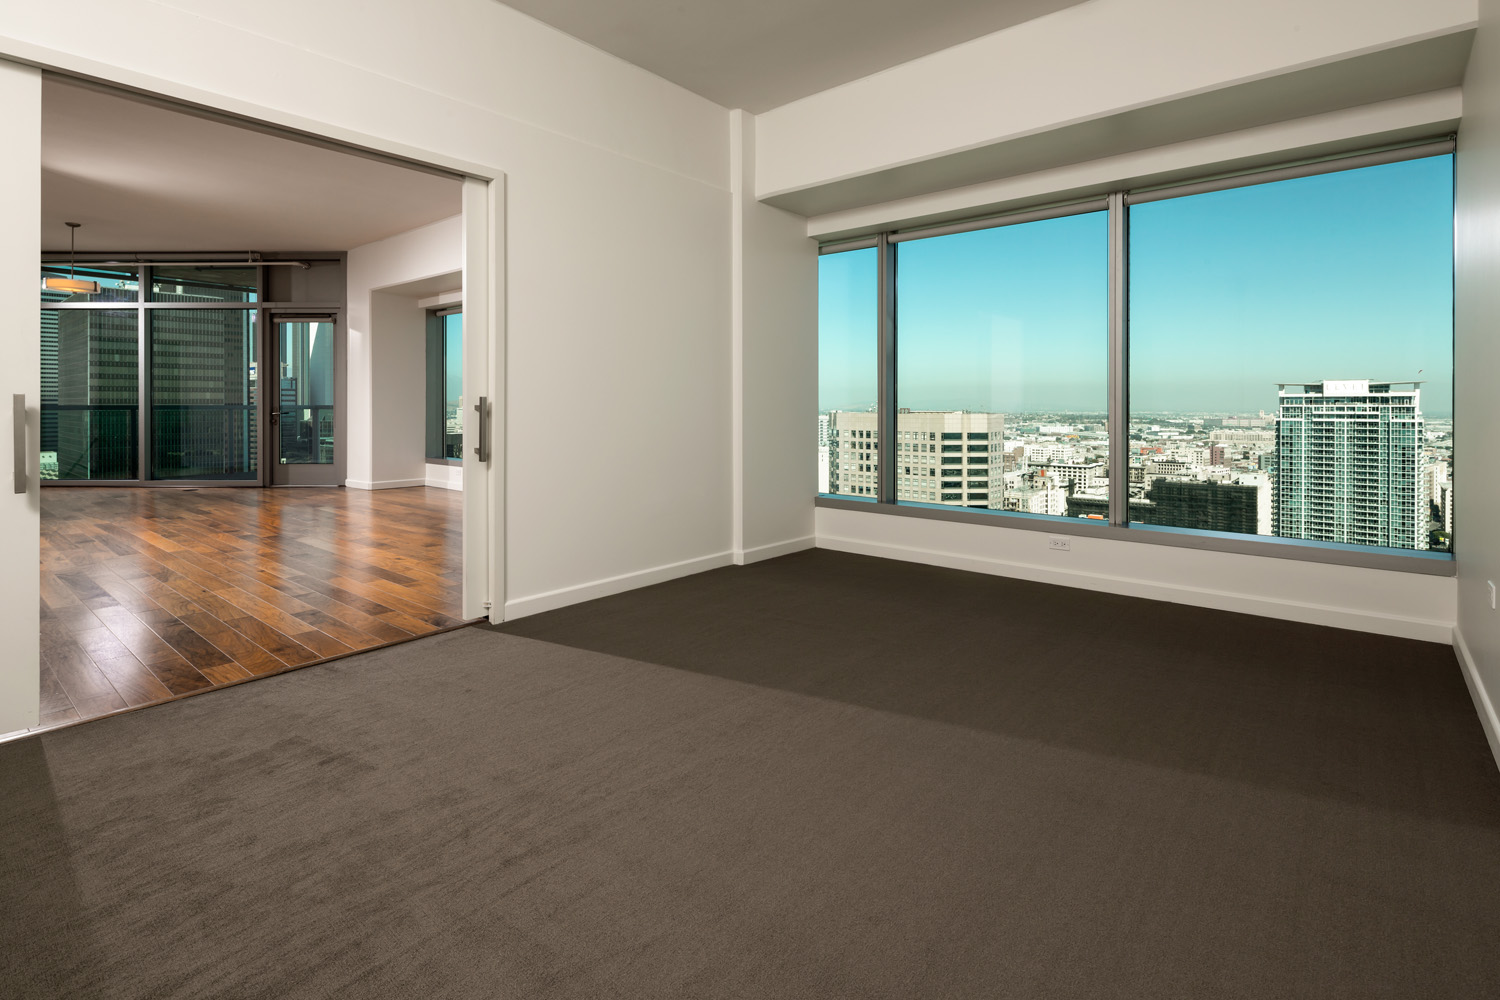 2 bedroom 2 bath interior space at Watermarke Tower Apartments with views of Downtown Los Angeles